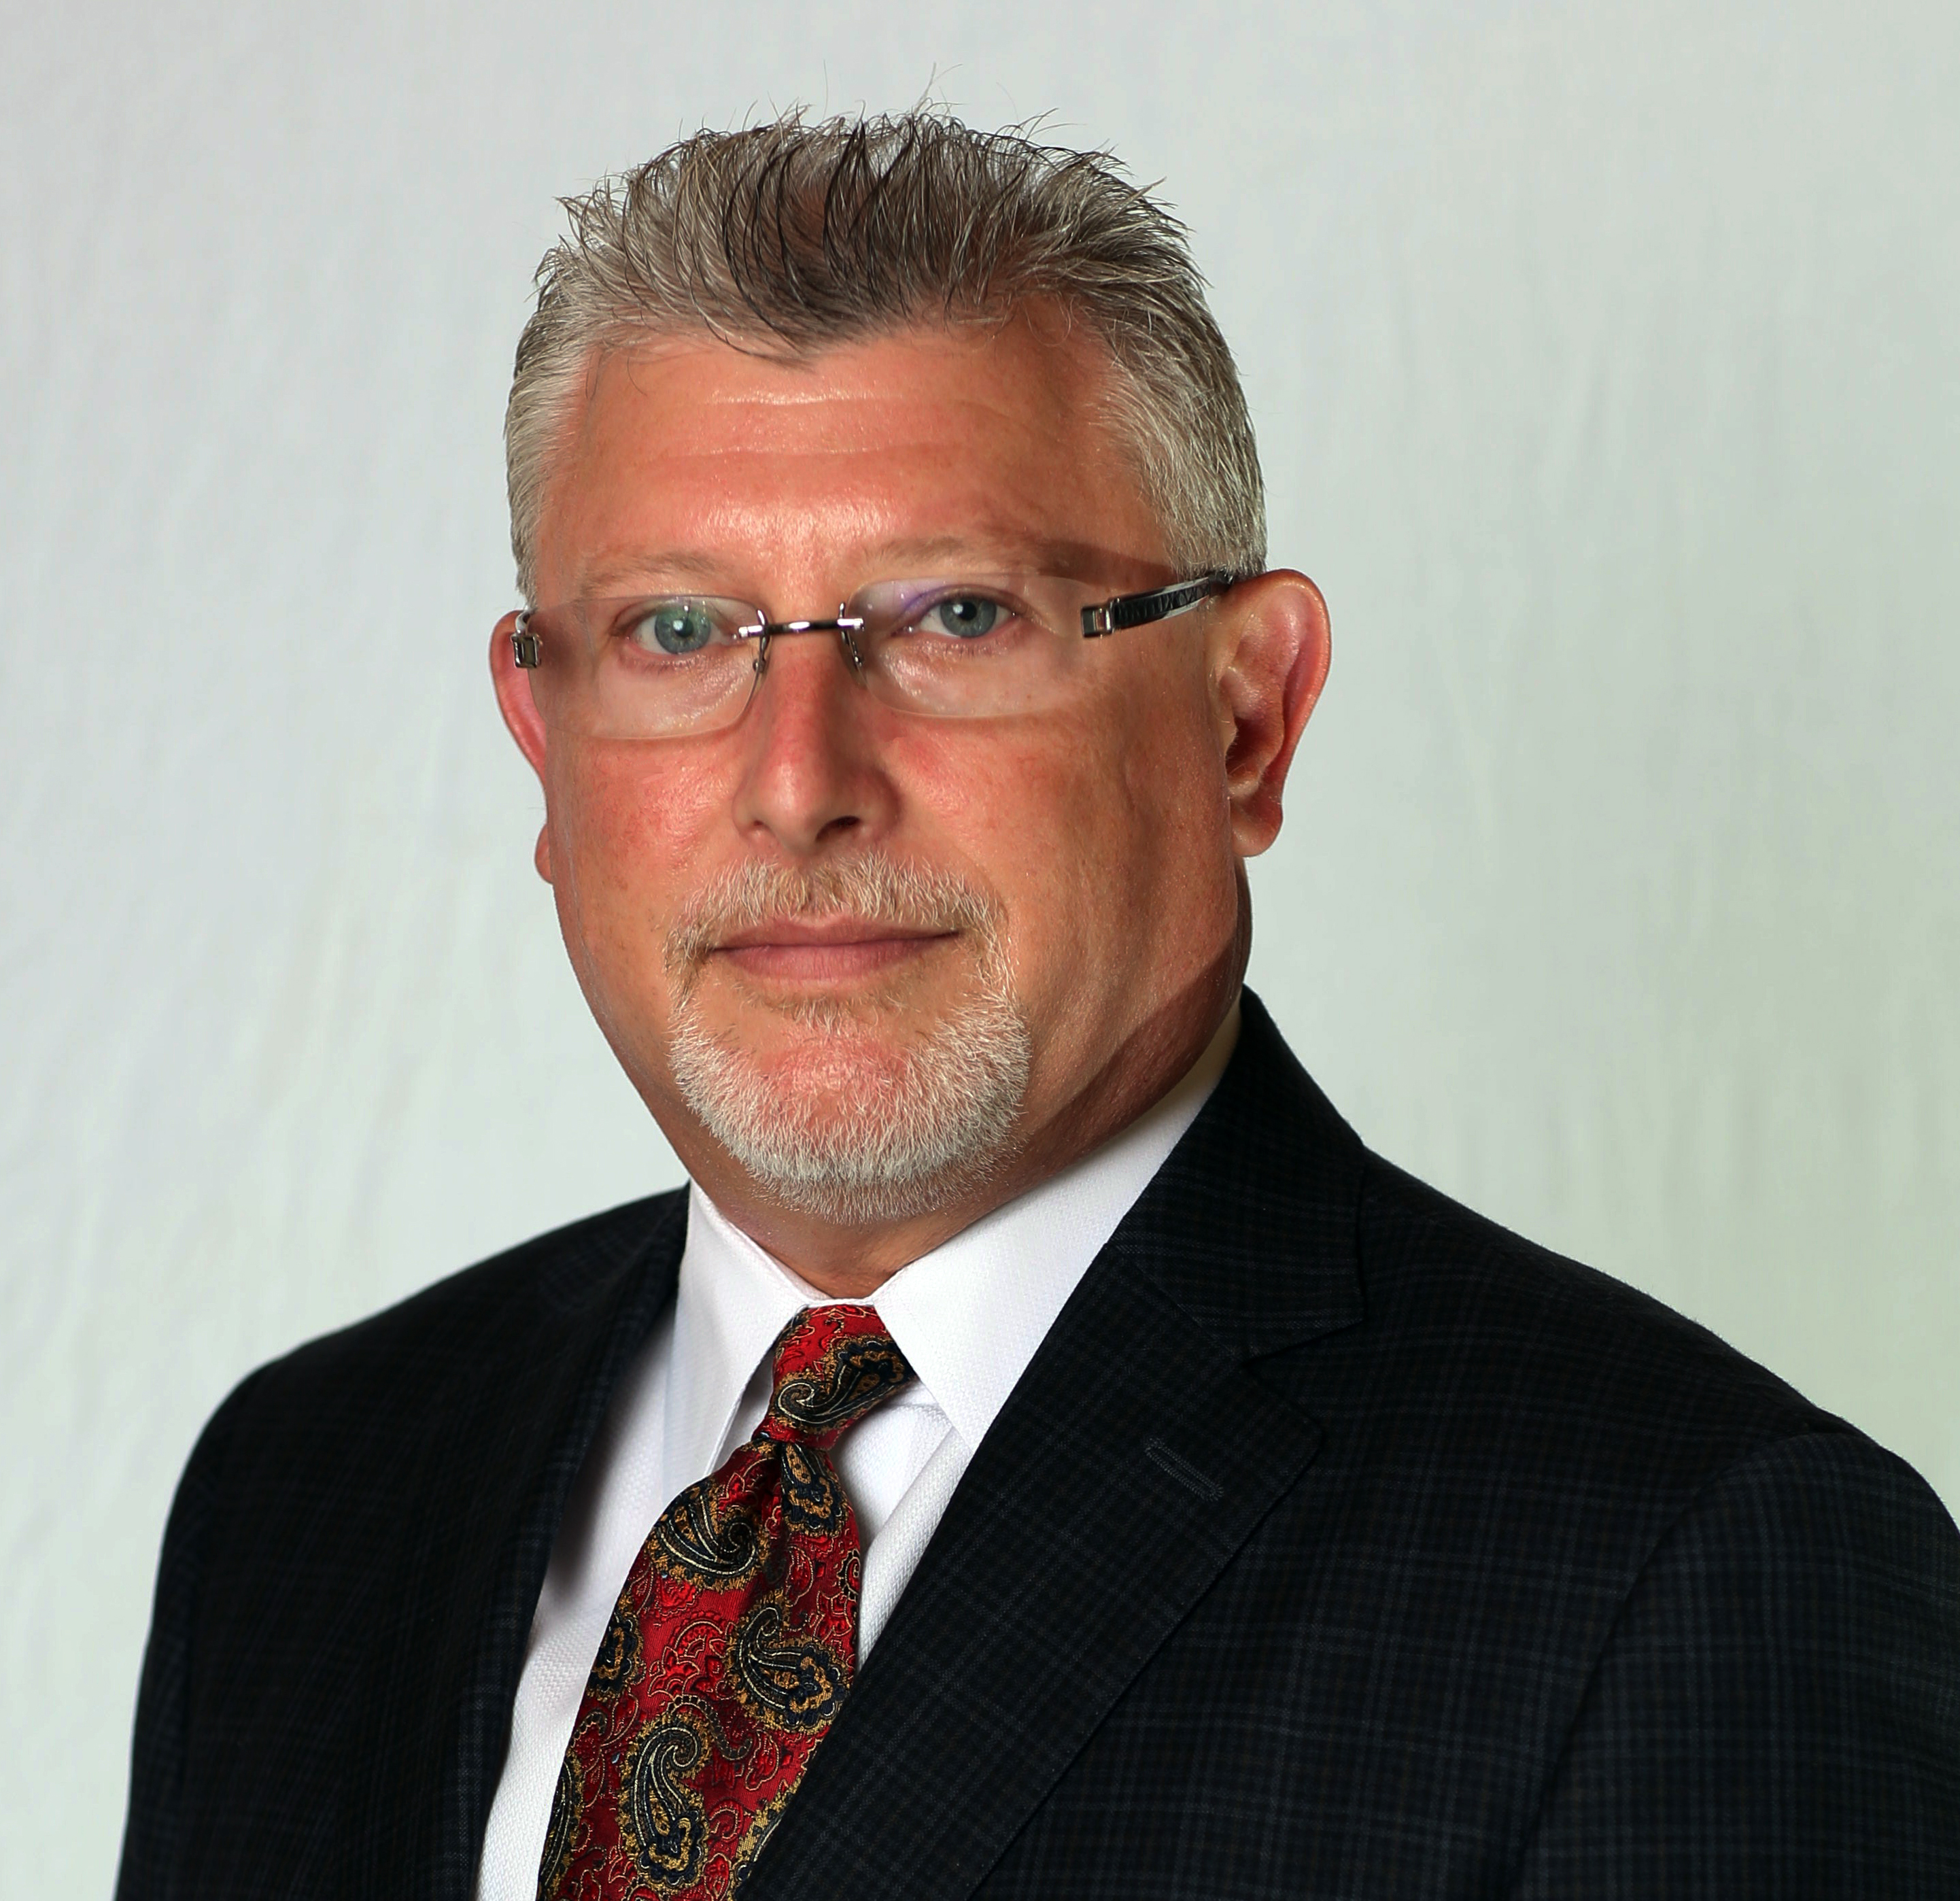 David I. Katz, AAMS® AIF®'s advisor photo